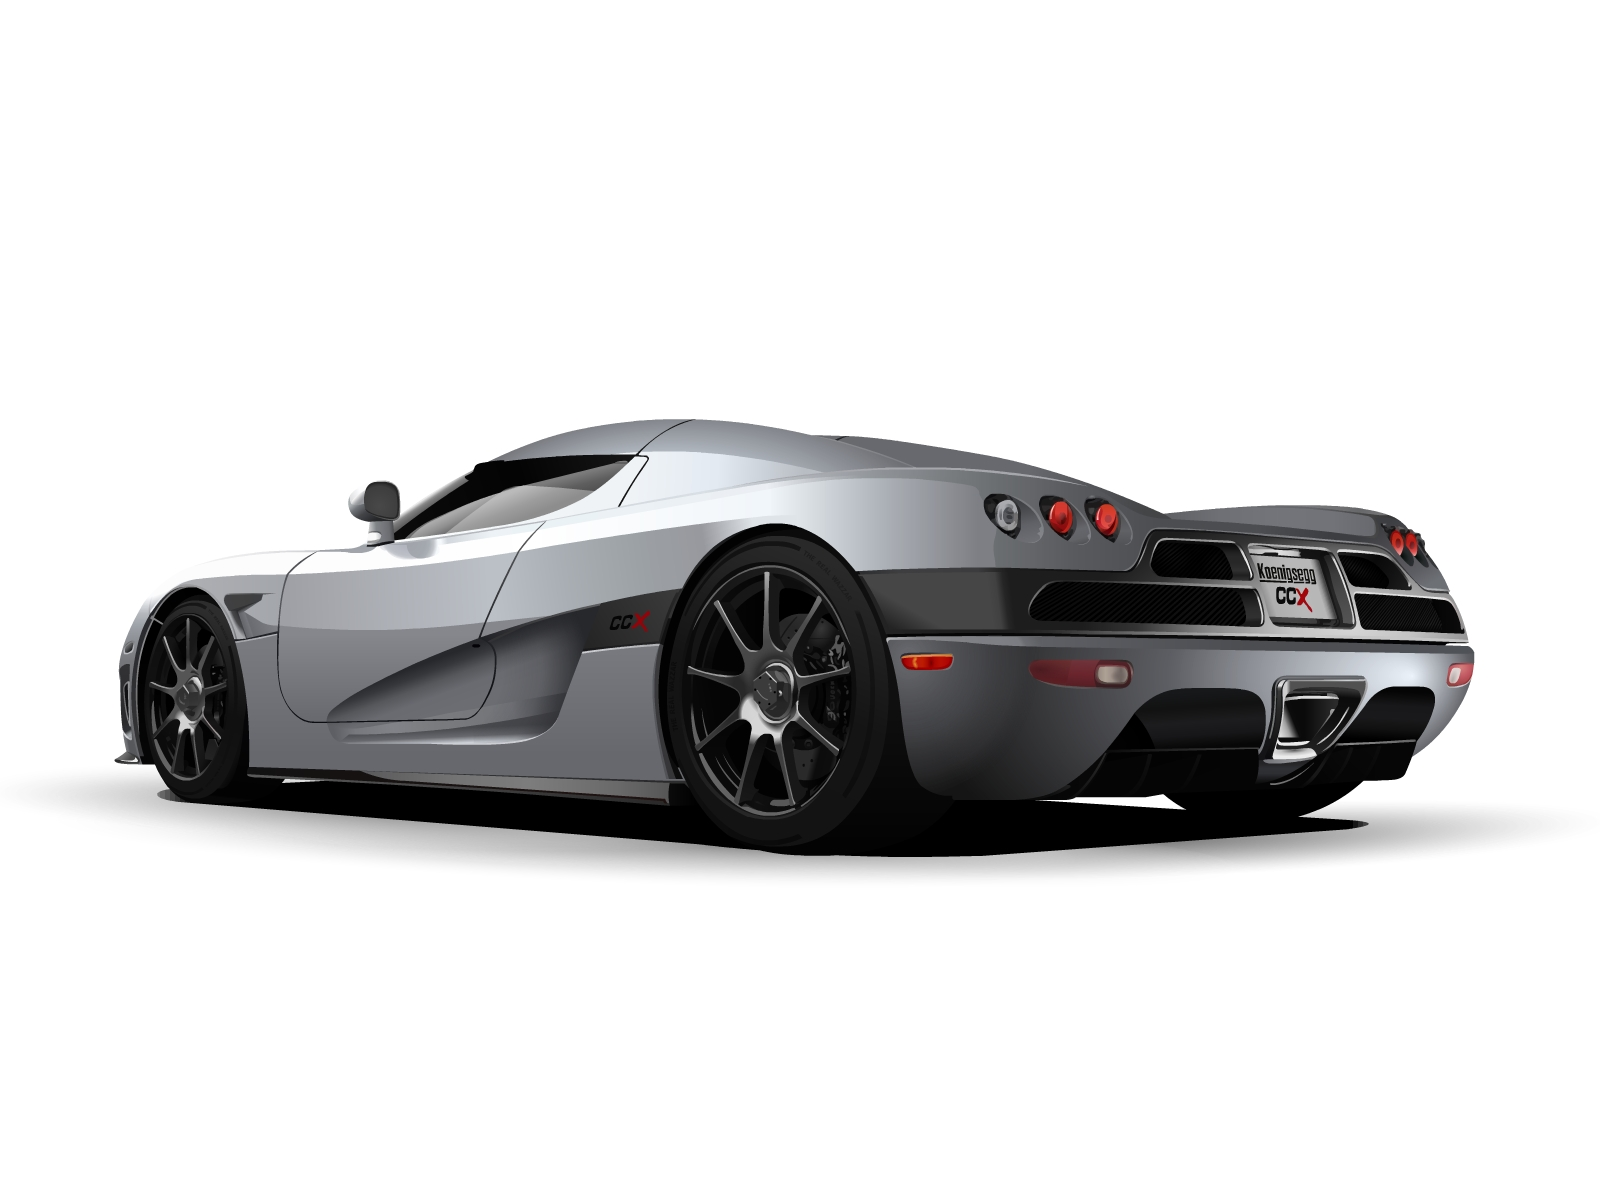 Fastest Car In The World Wallpaper Hd Photo Gallery Koenigsegg Ccx Photos And Review